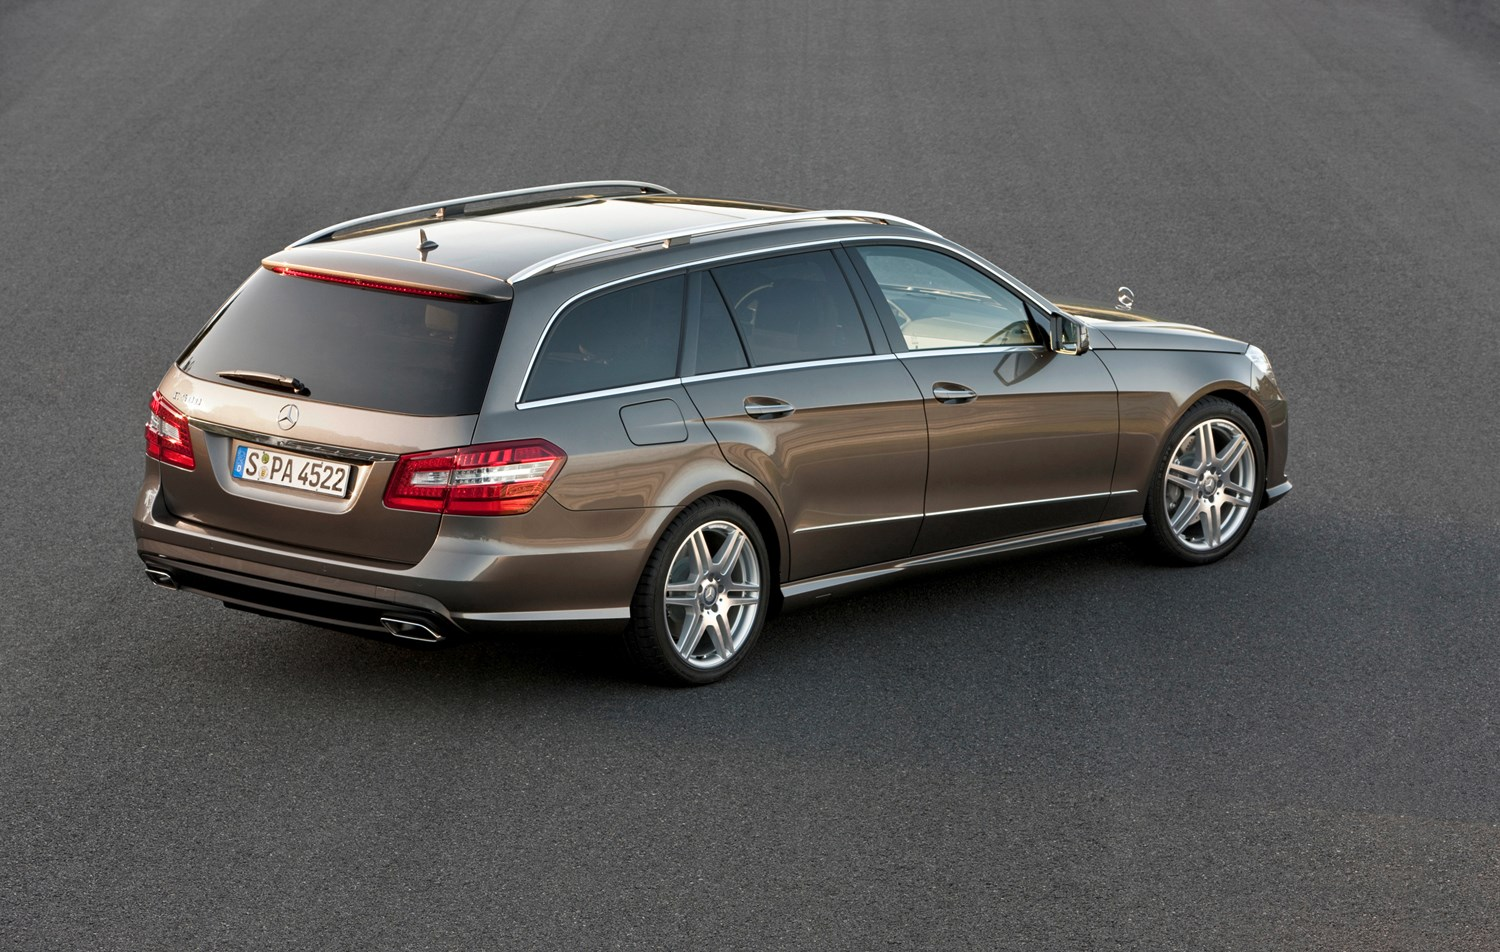 Mercedes Benz E Class Estate 2010 Photos Parkers